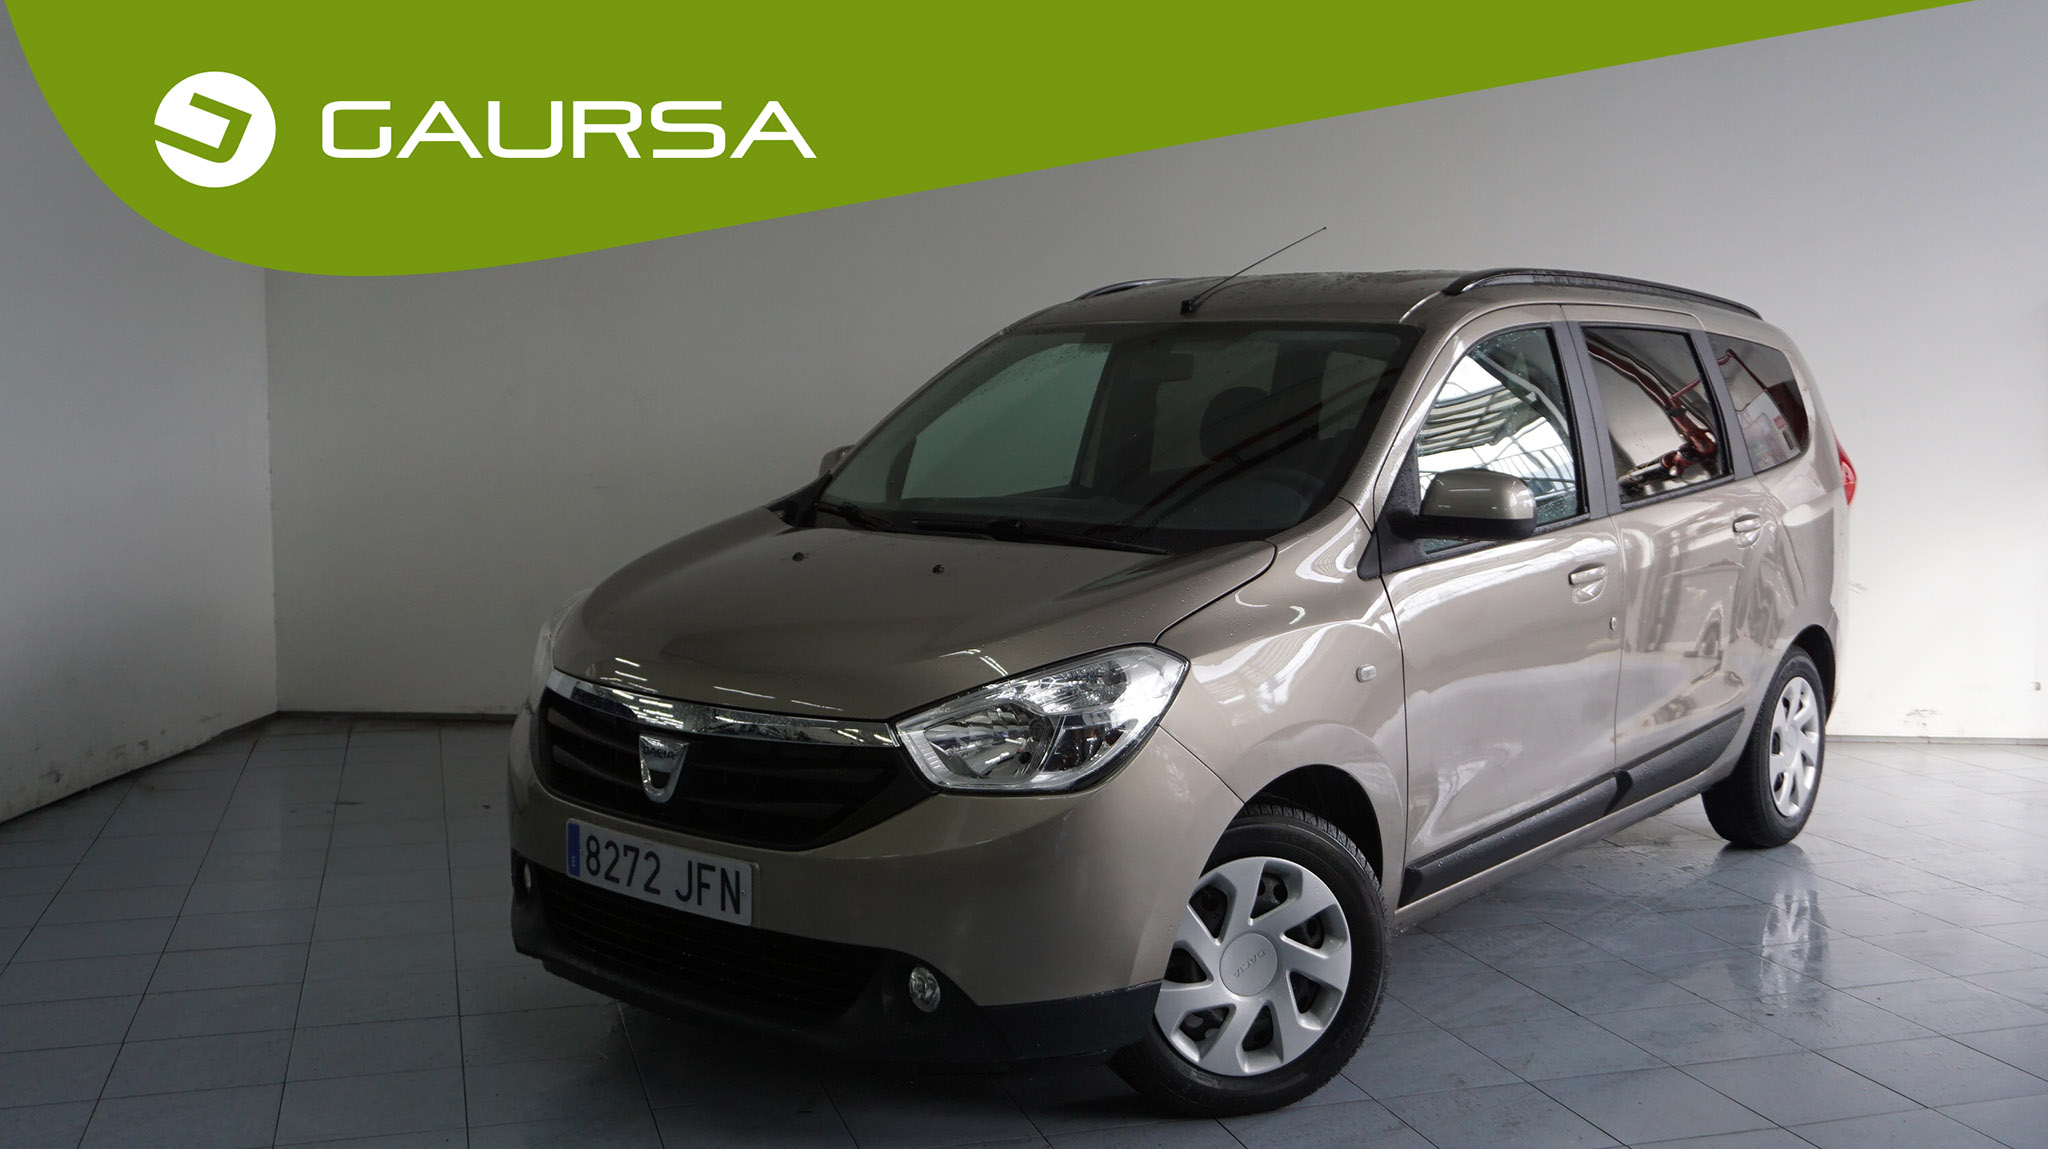 DACIA LODGY 1.5 DCI 90 LAUREATE 90 5P